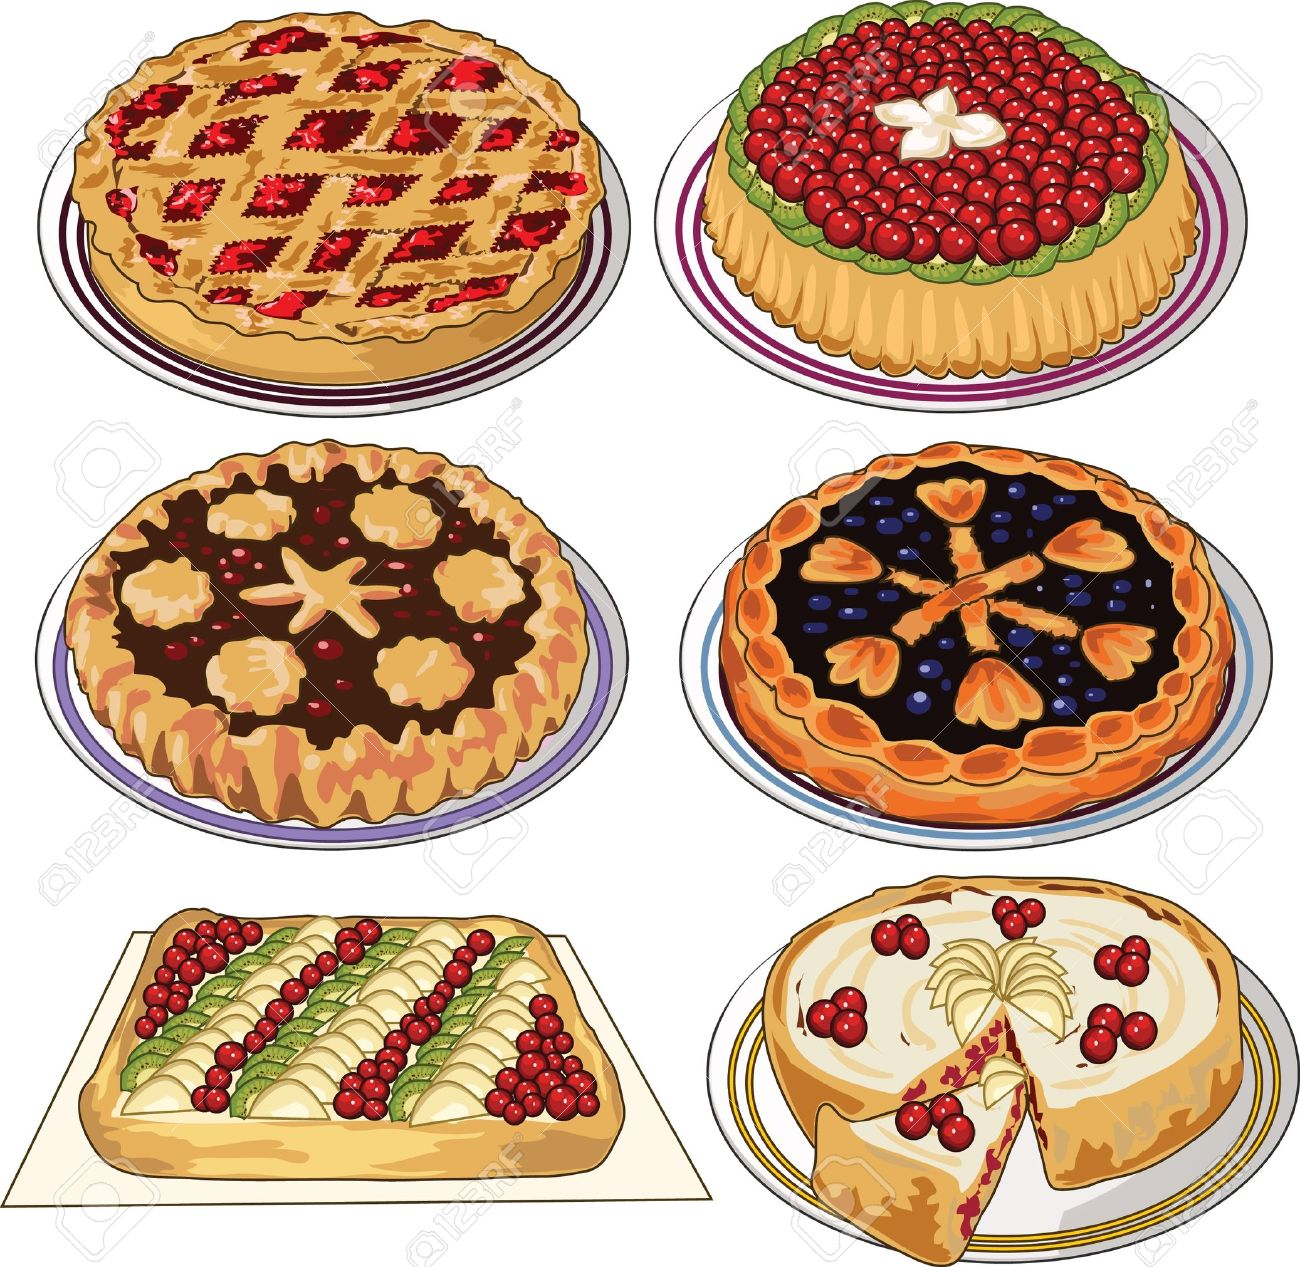 Pies clipart 5 » Clipart Station.